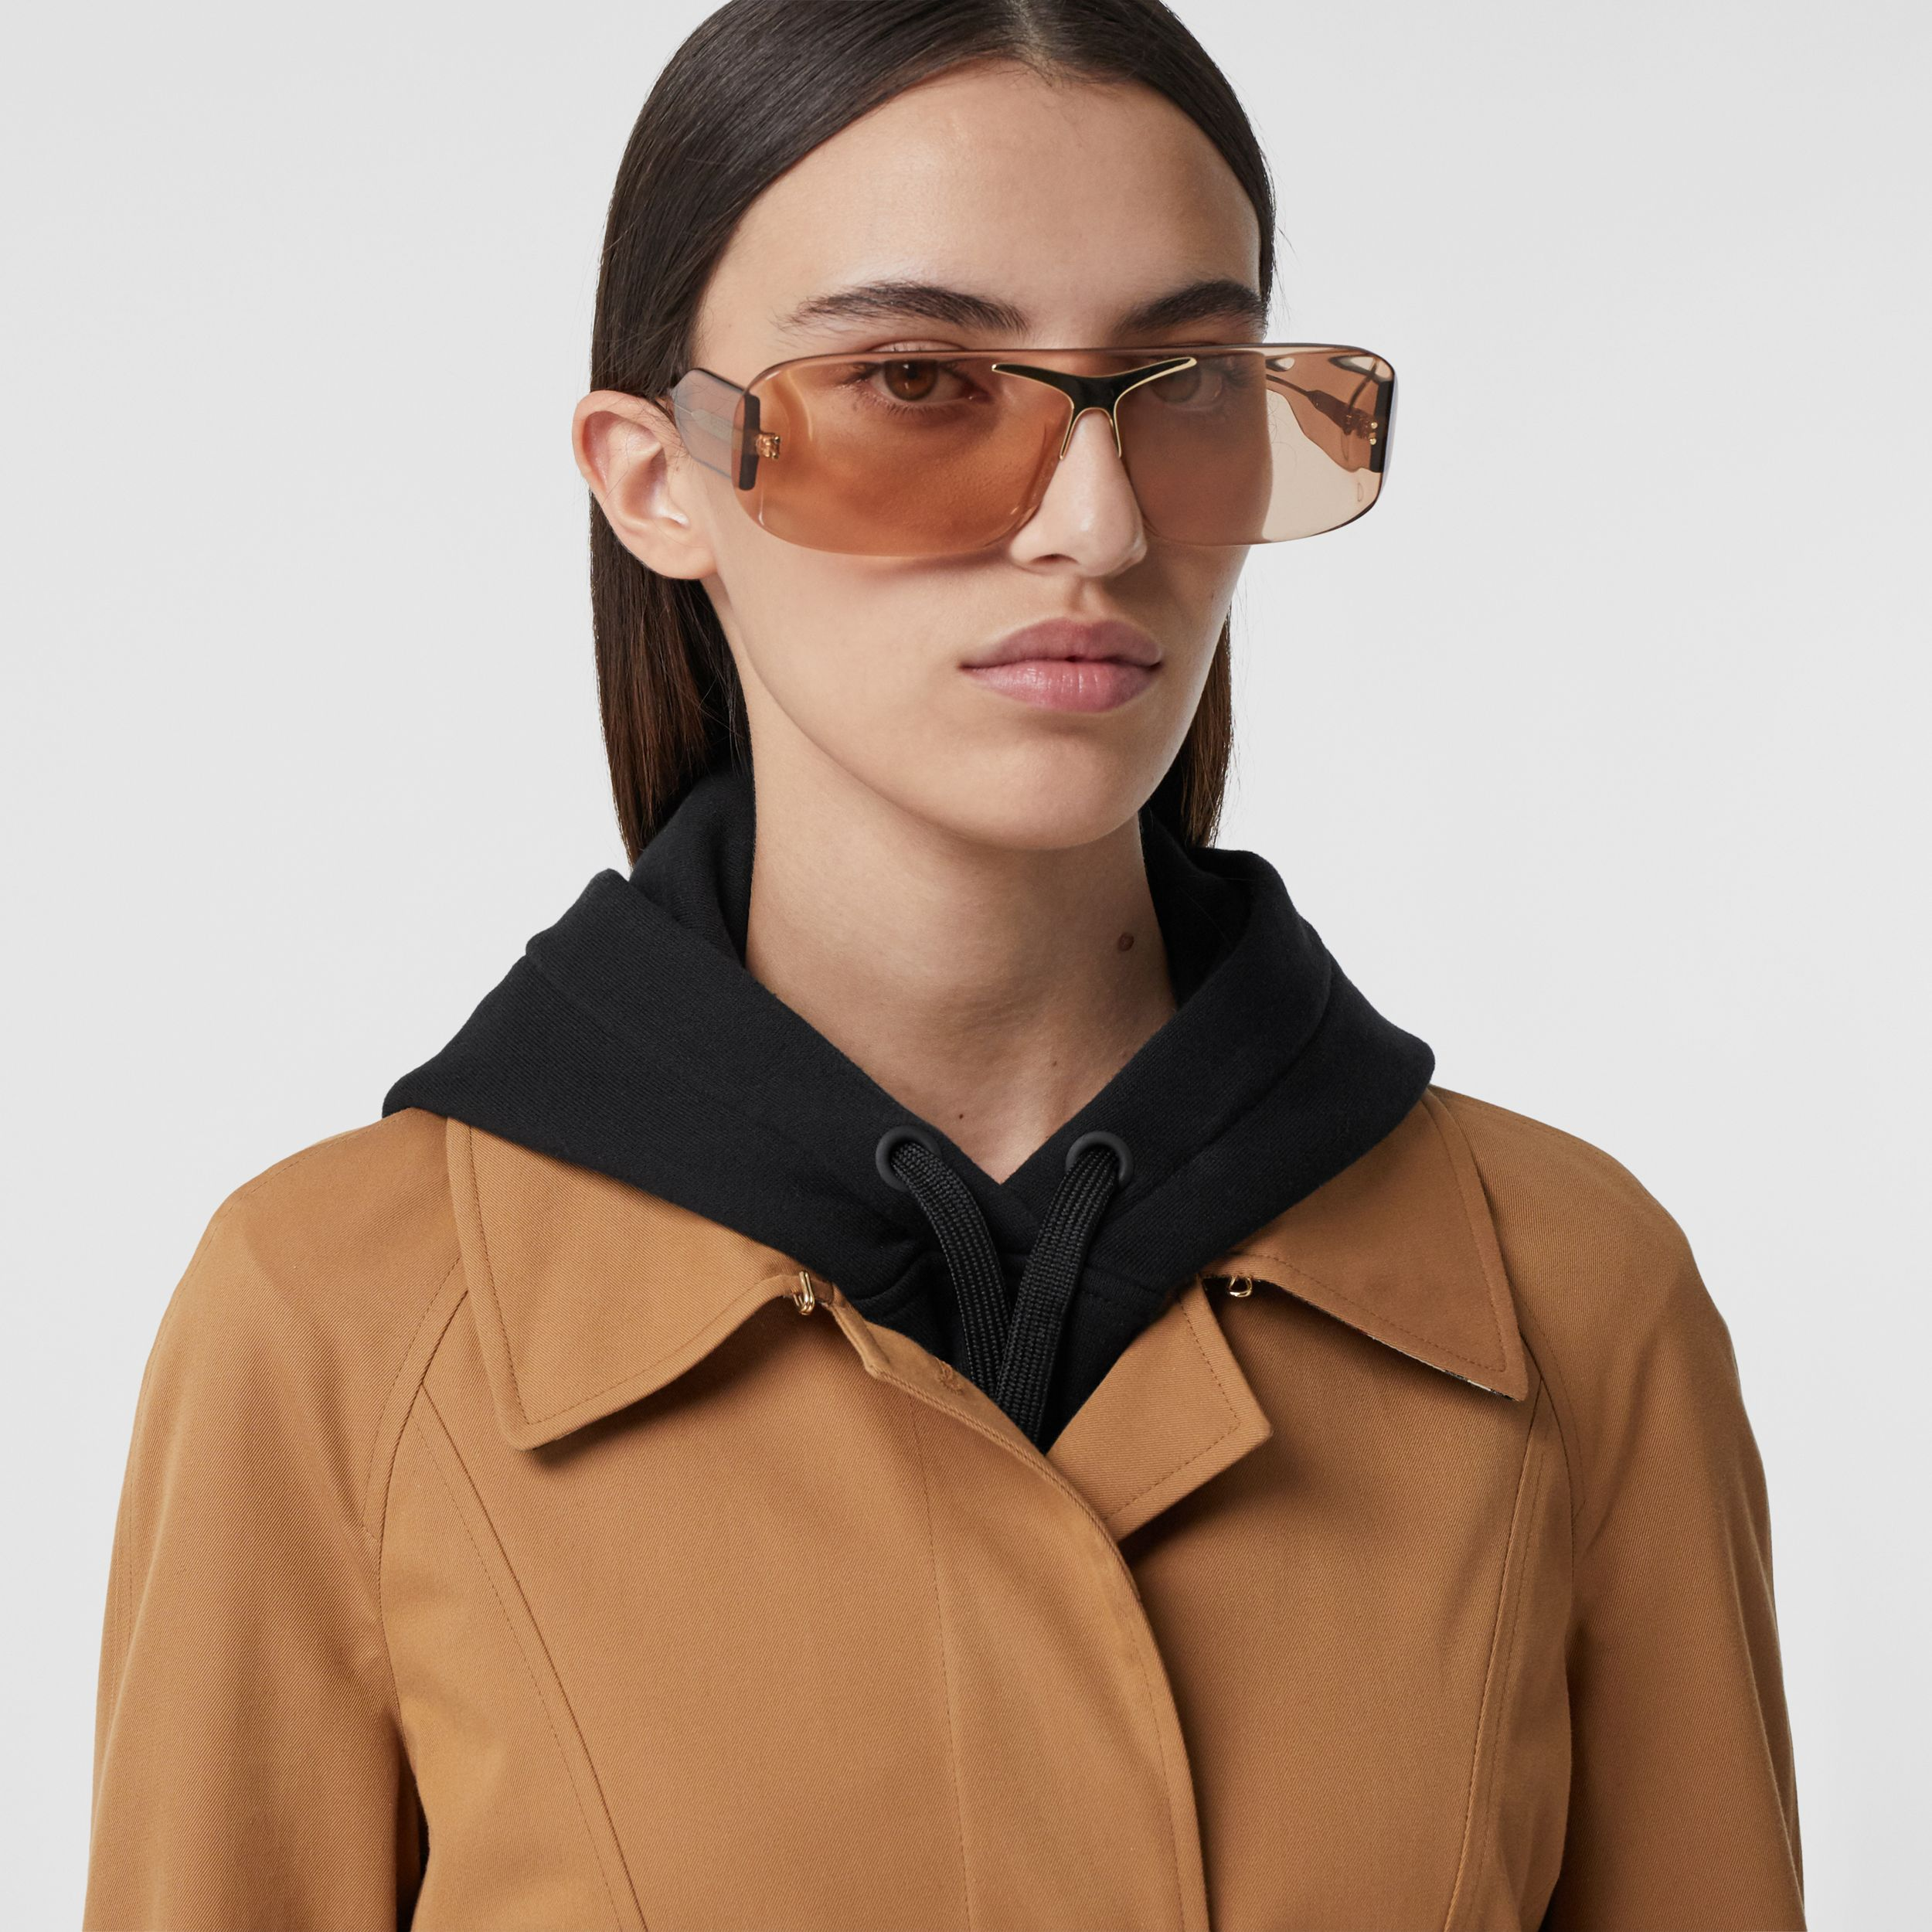 Cotton Gabardine Belted Swing Coat in Nutmeg - Women | Burberry United States - 2